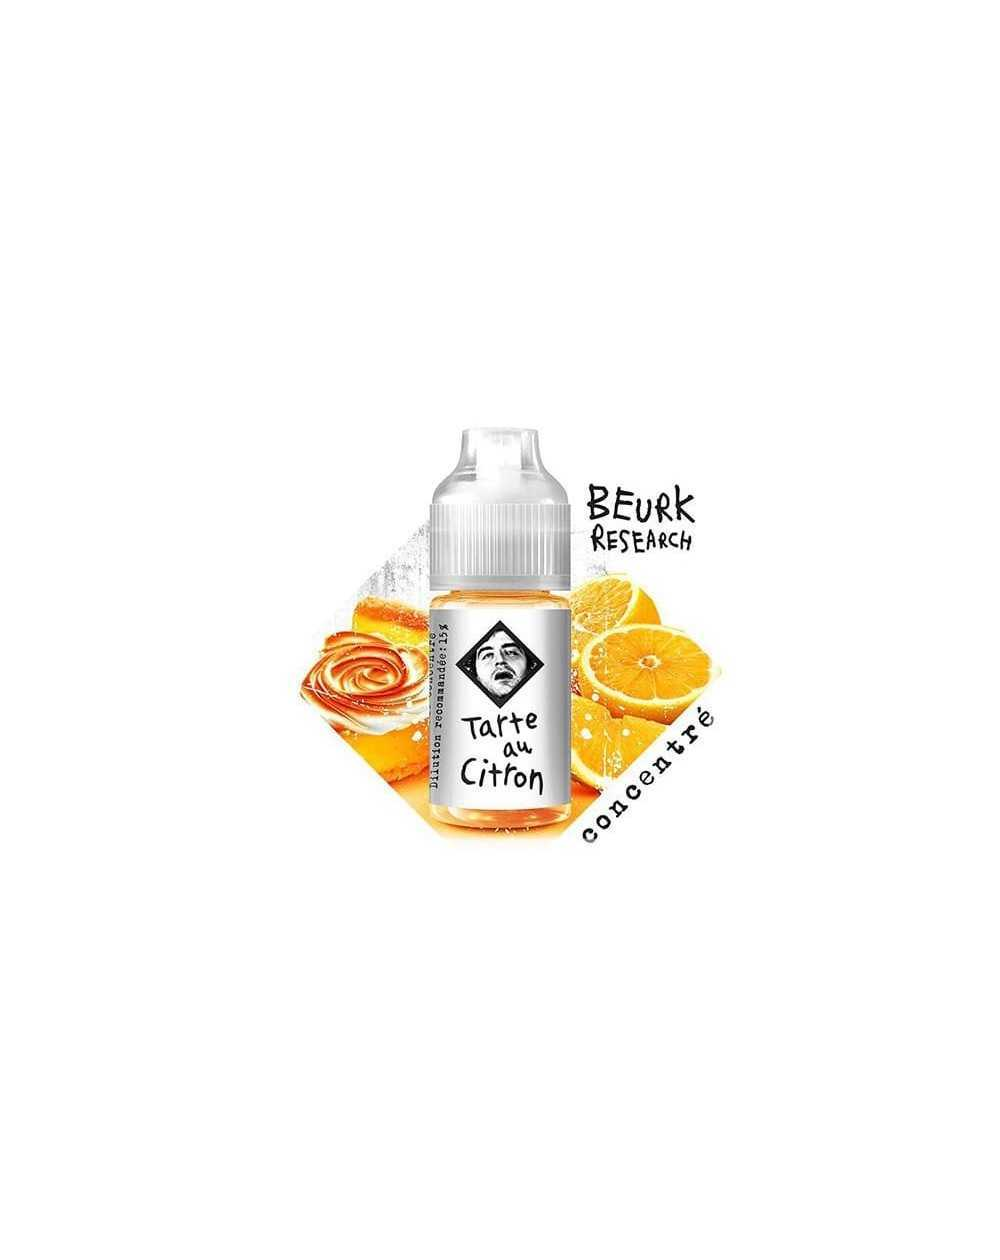 Concentrated aroma Tarte au citron 30ml - Beurk Research-1